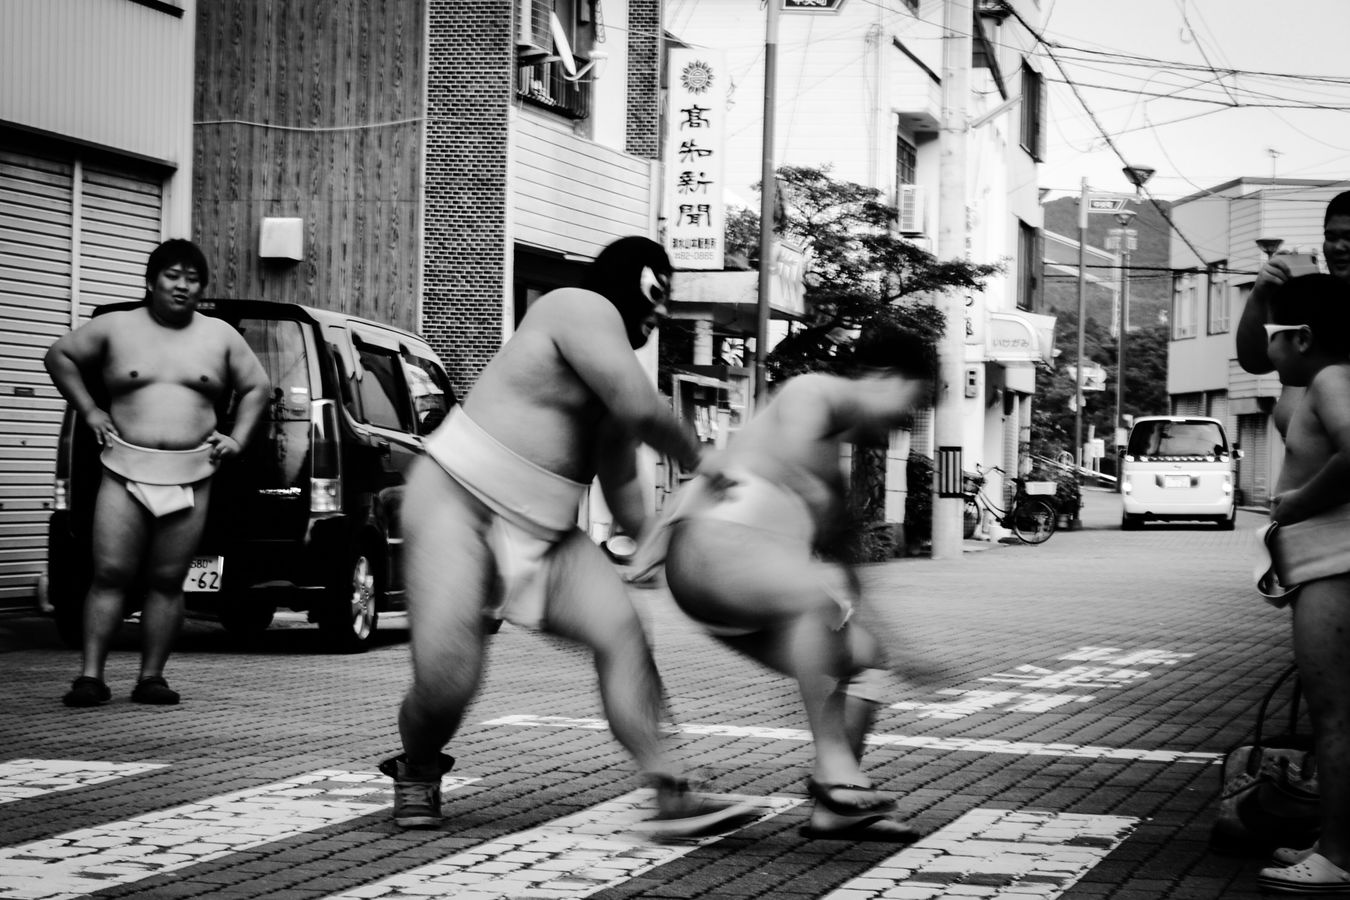 Streetphotography Blackandwhite Black & White Japan Sumou